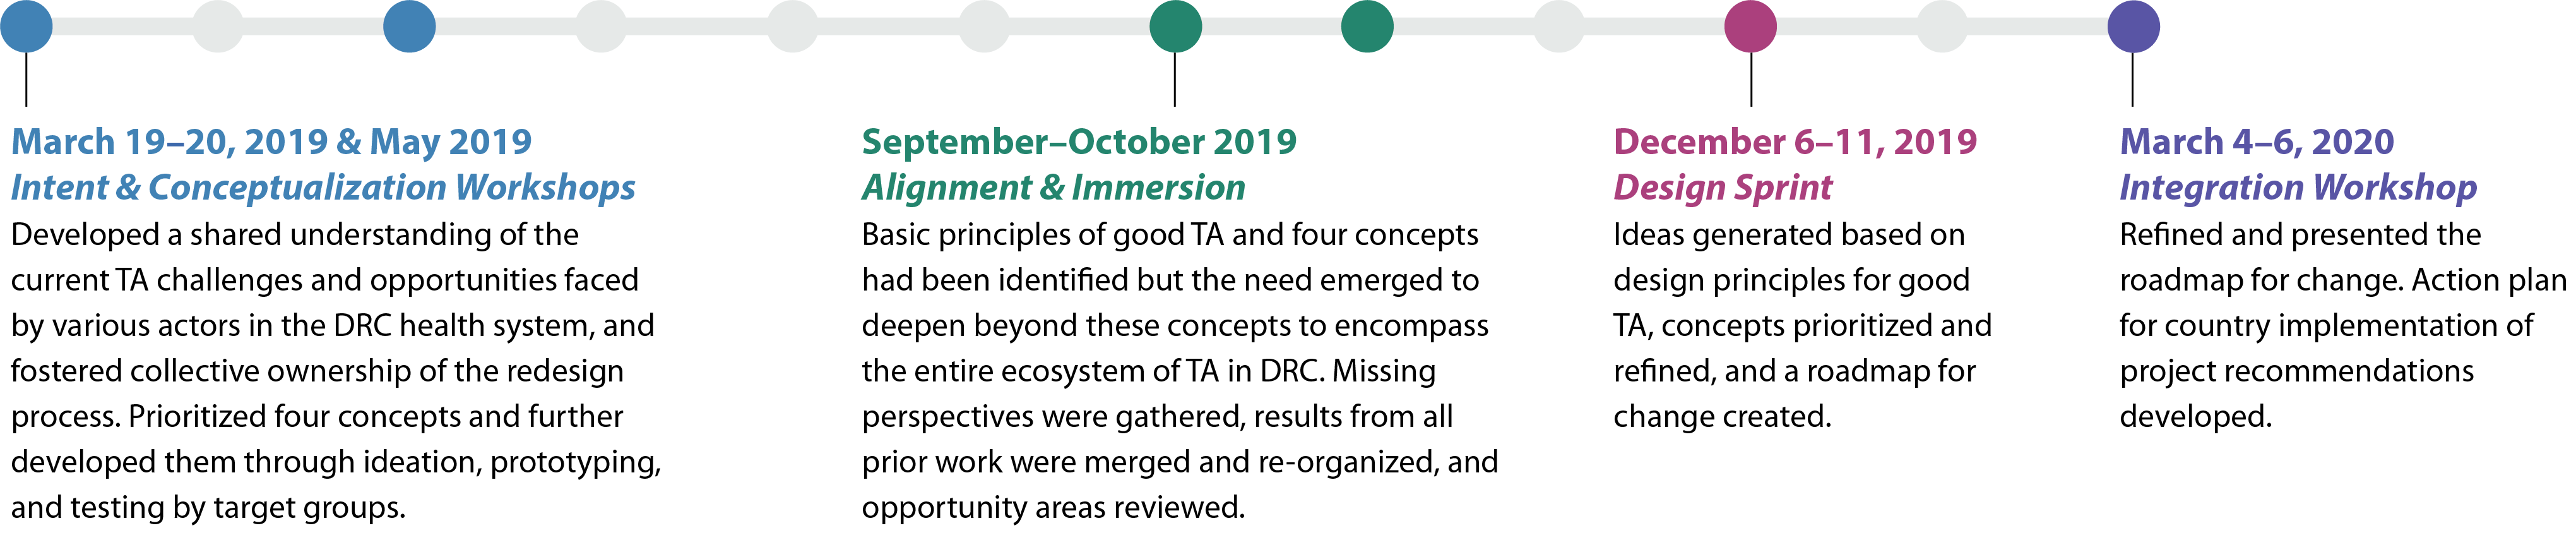 March 19-20, 2019 and May 2019 Intent and Conceptualization Workshops, September-October 2019 alignment and immersion, December 6-11, 2019 Design Sprint, and March 4-6, 2020 Integration Workshop